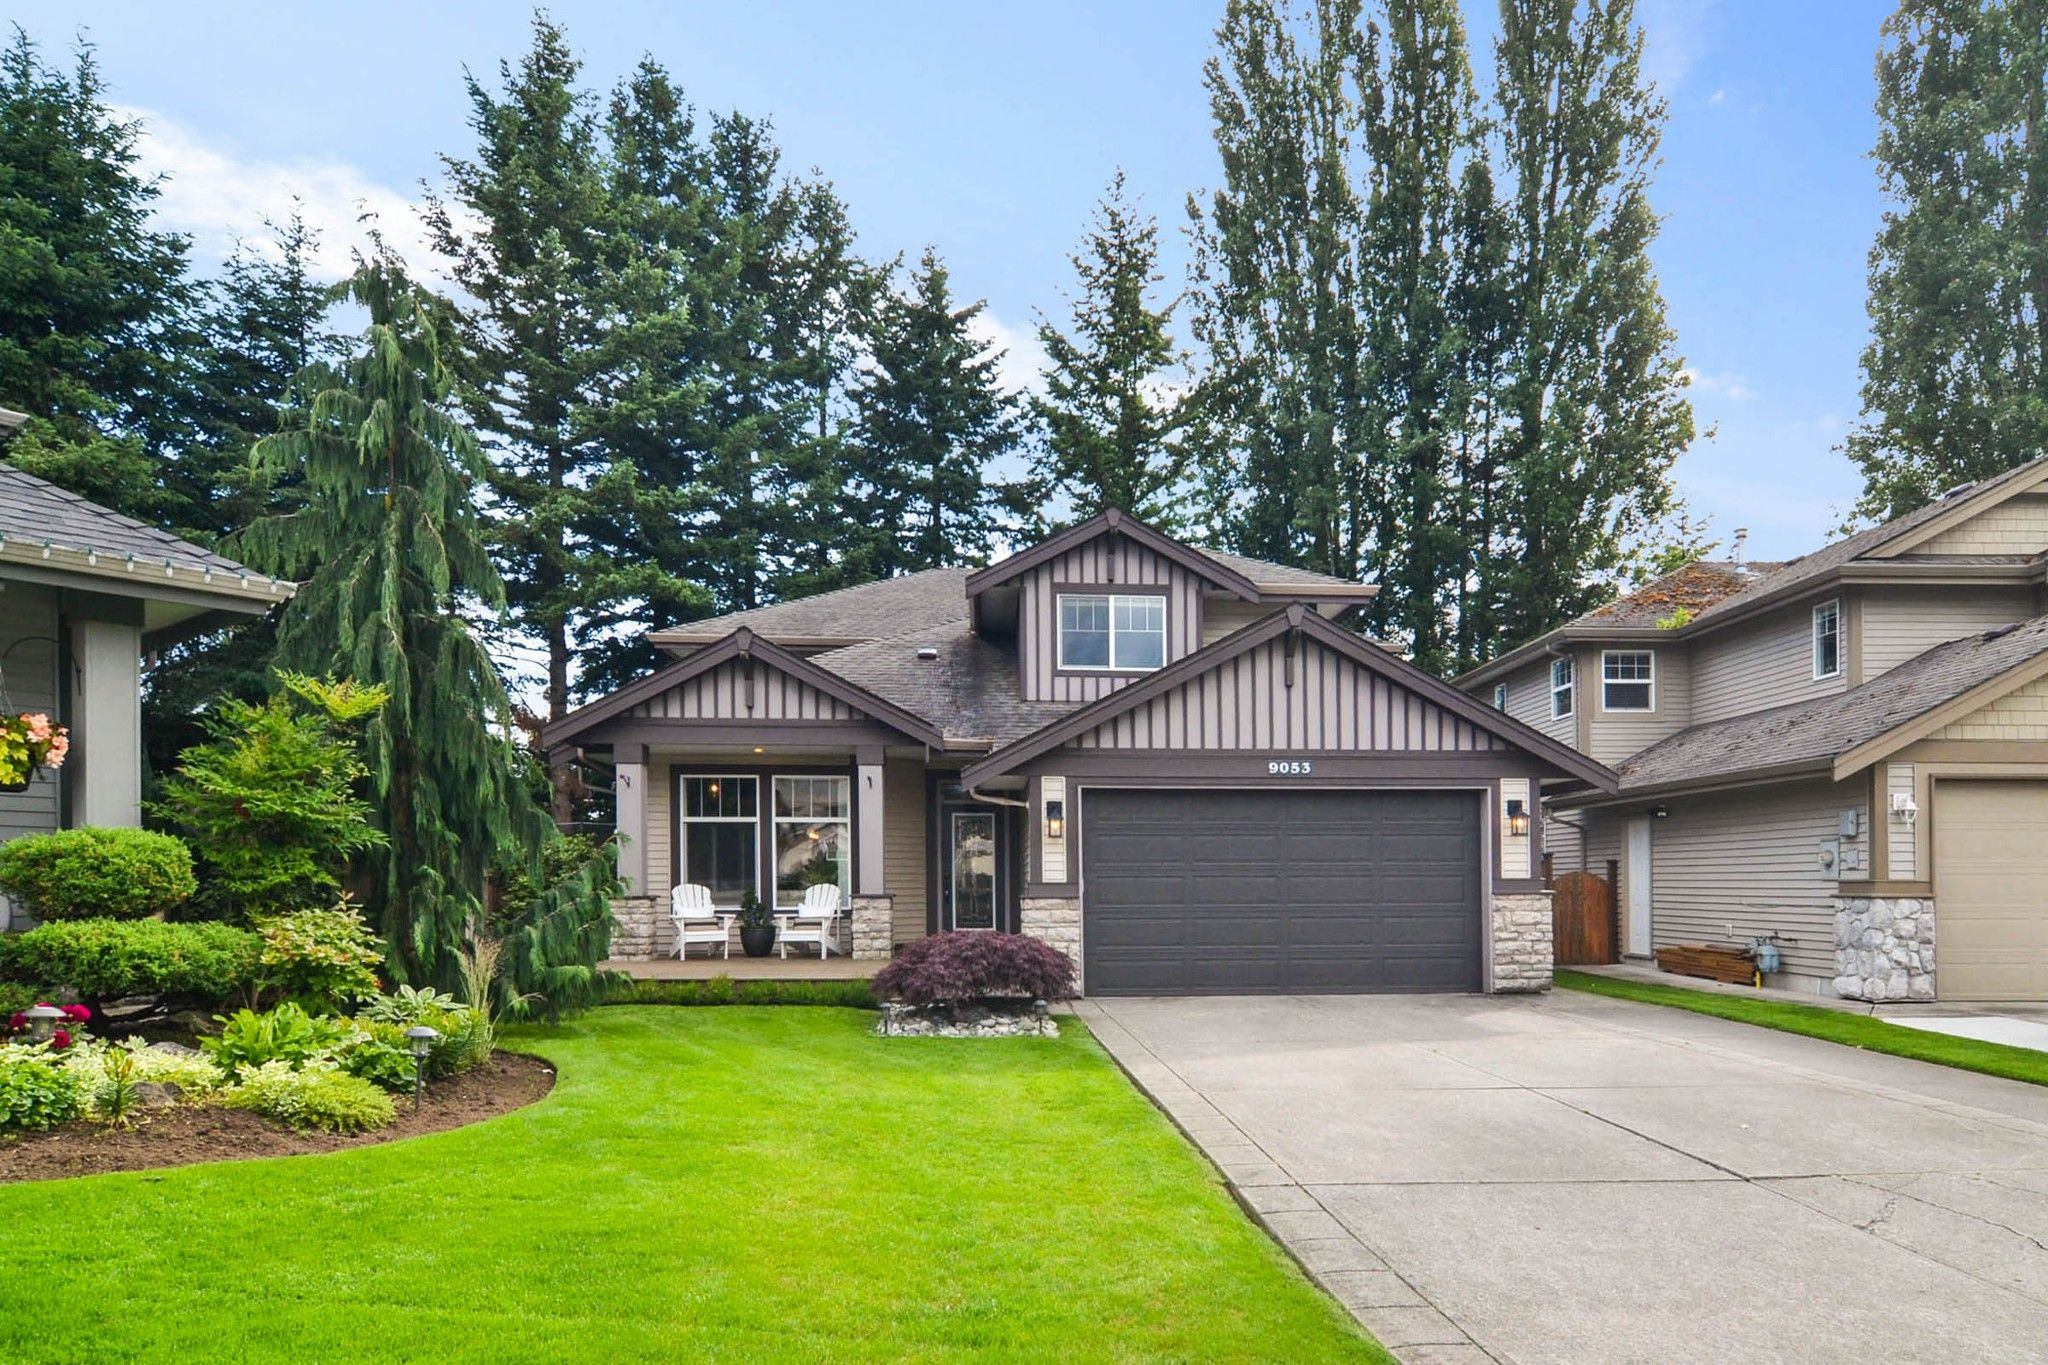 """Main Photo: 9053 202B Street in Langley: Walnut Grove House for sale in """"COUNTRY CROSSING"""" : MLS®# R2592413"""